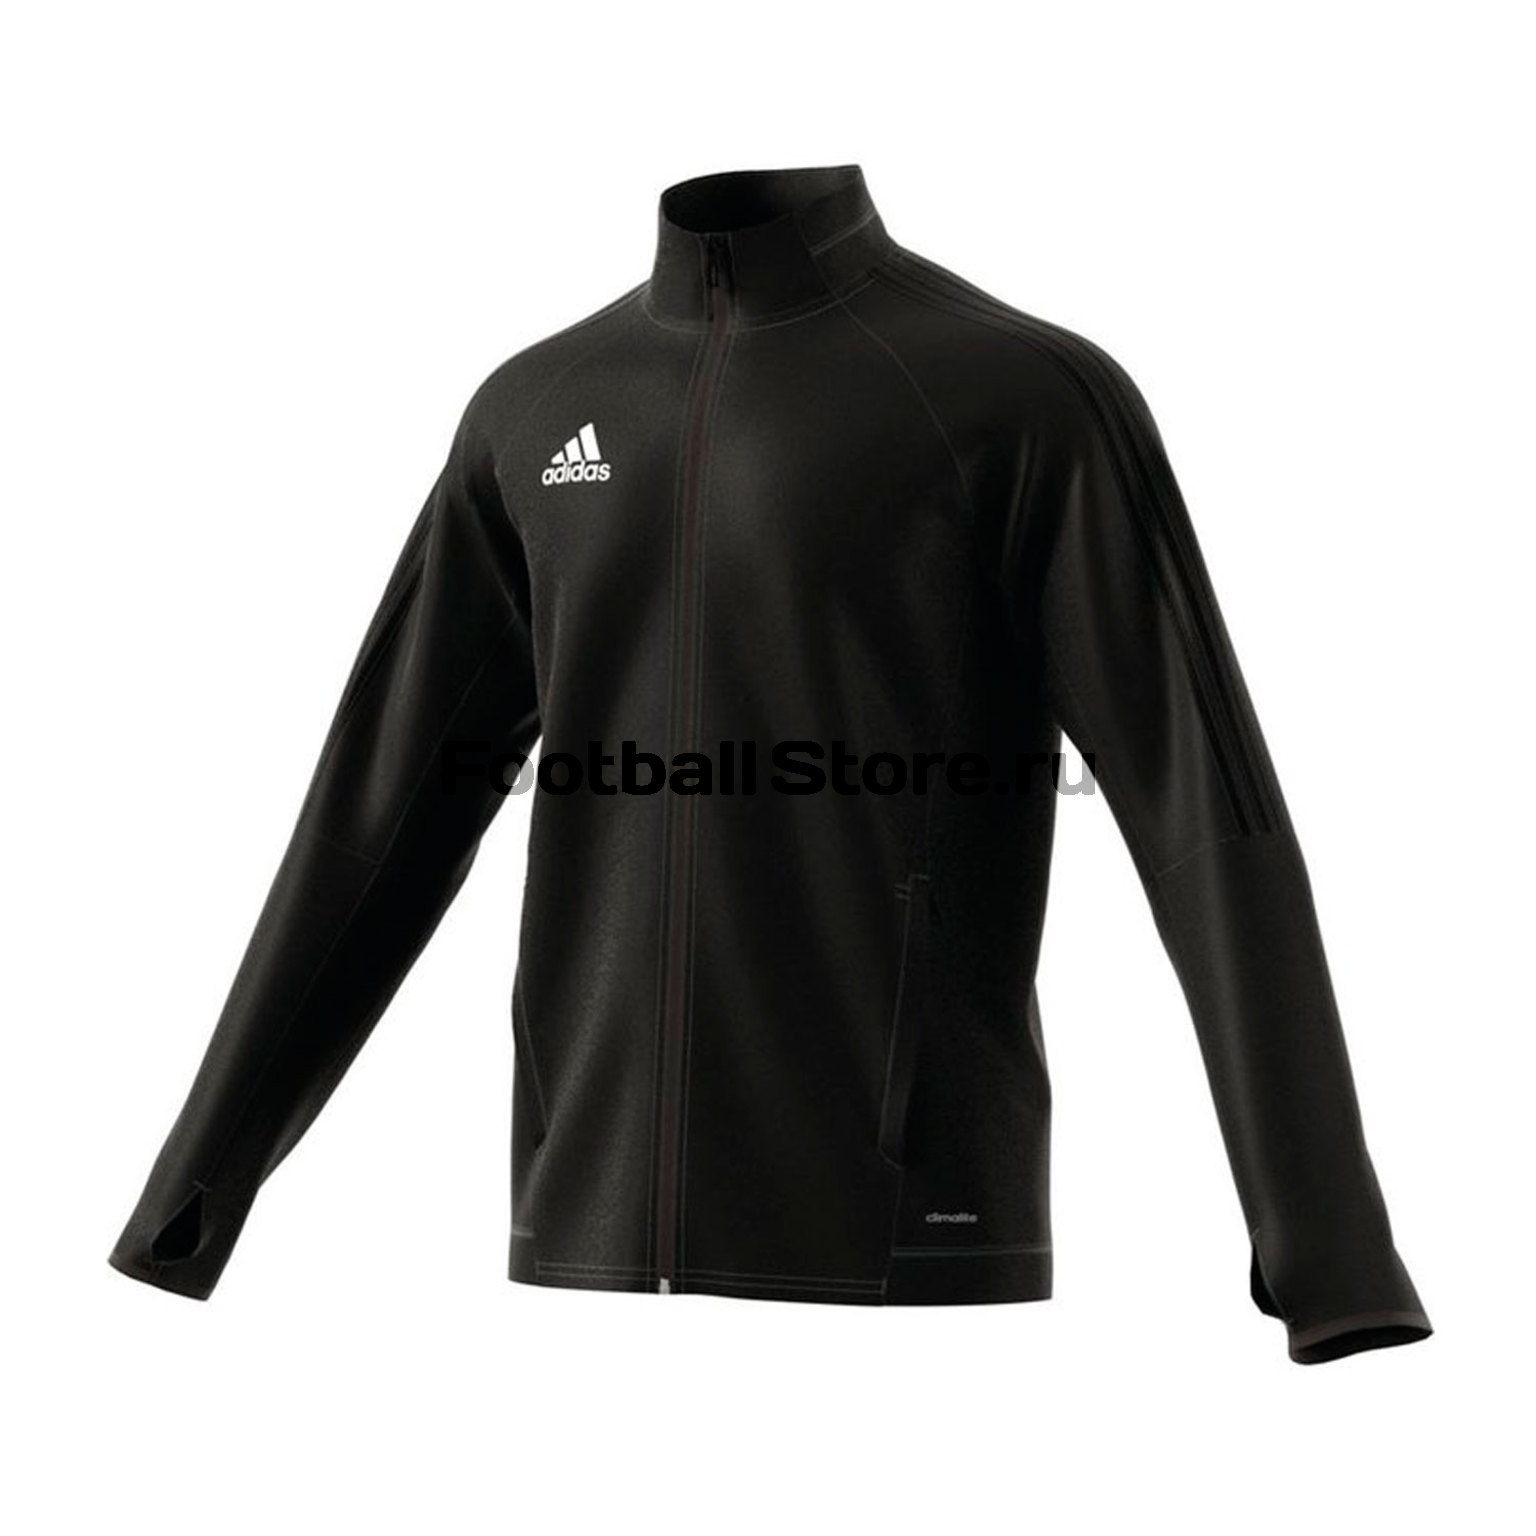 Олимпийка Adidas Tiro17 TRG JKT BJ9294 олимпийка мужская adidas tan club h jkt цвет черный dw9360 размер xs 40 42